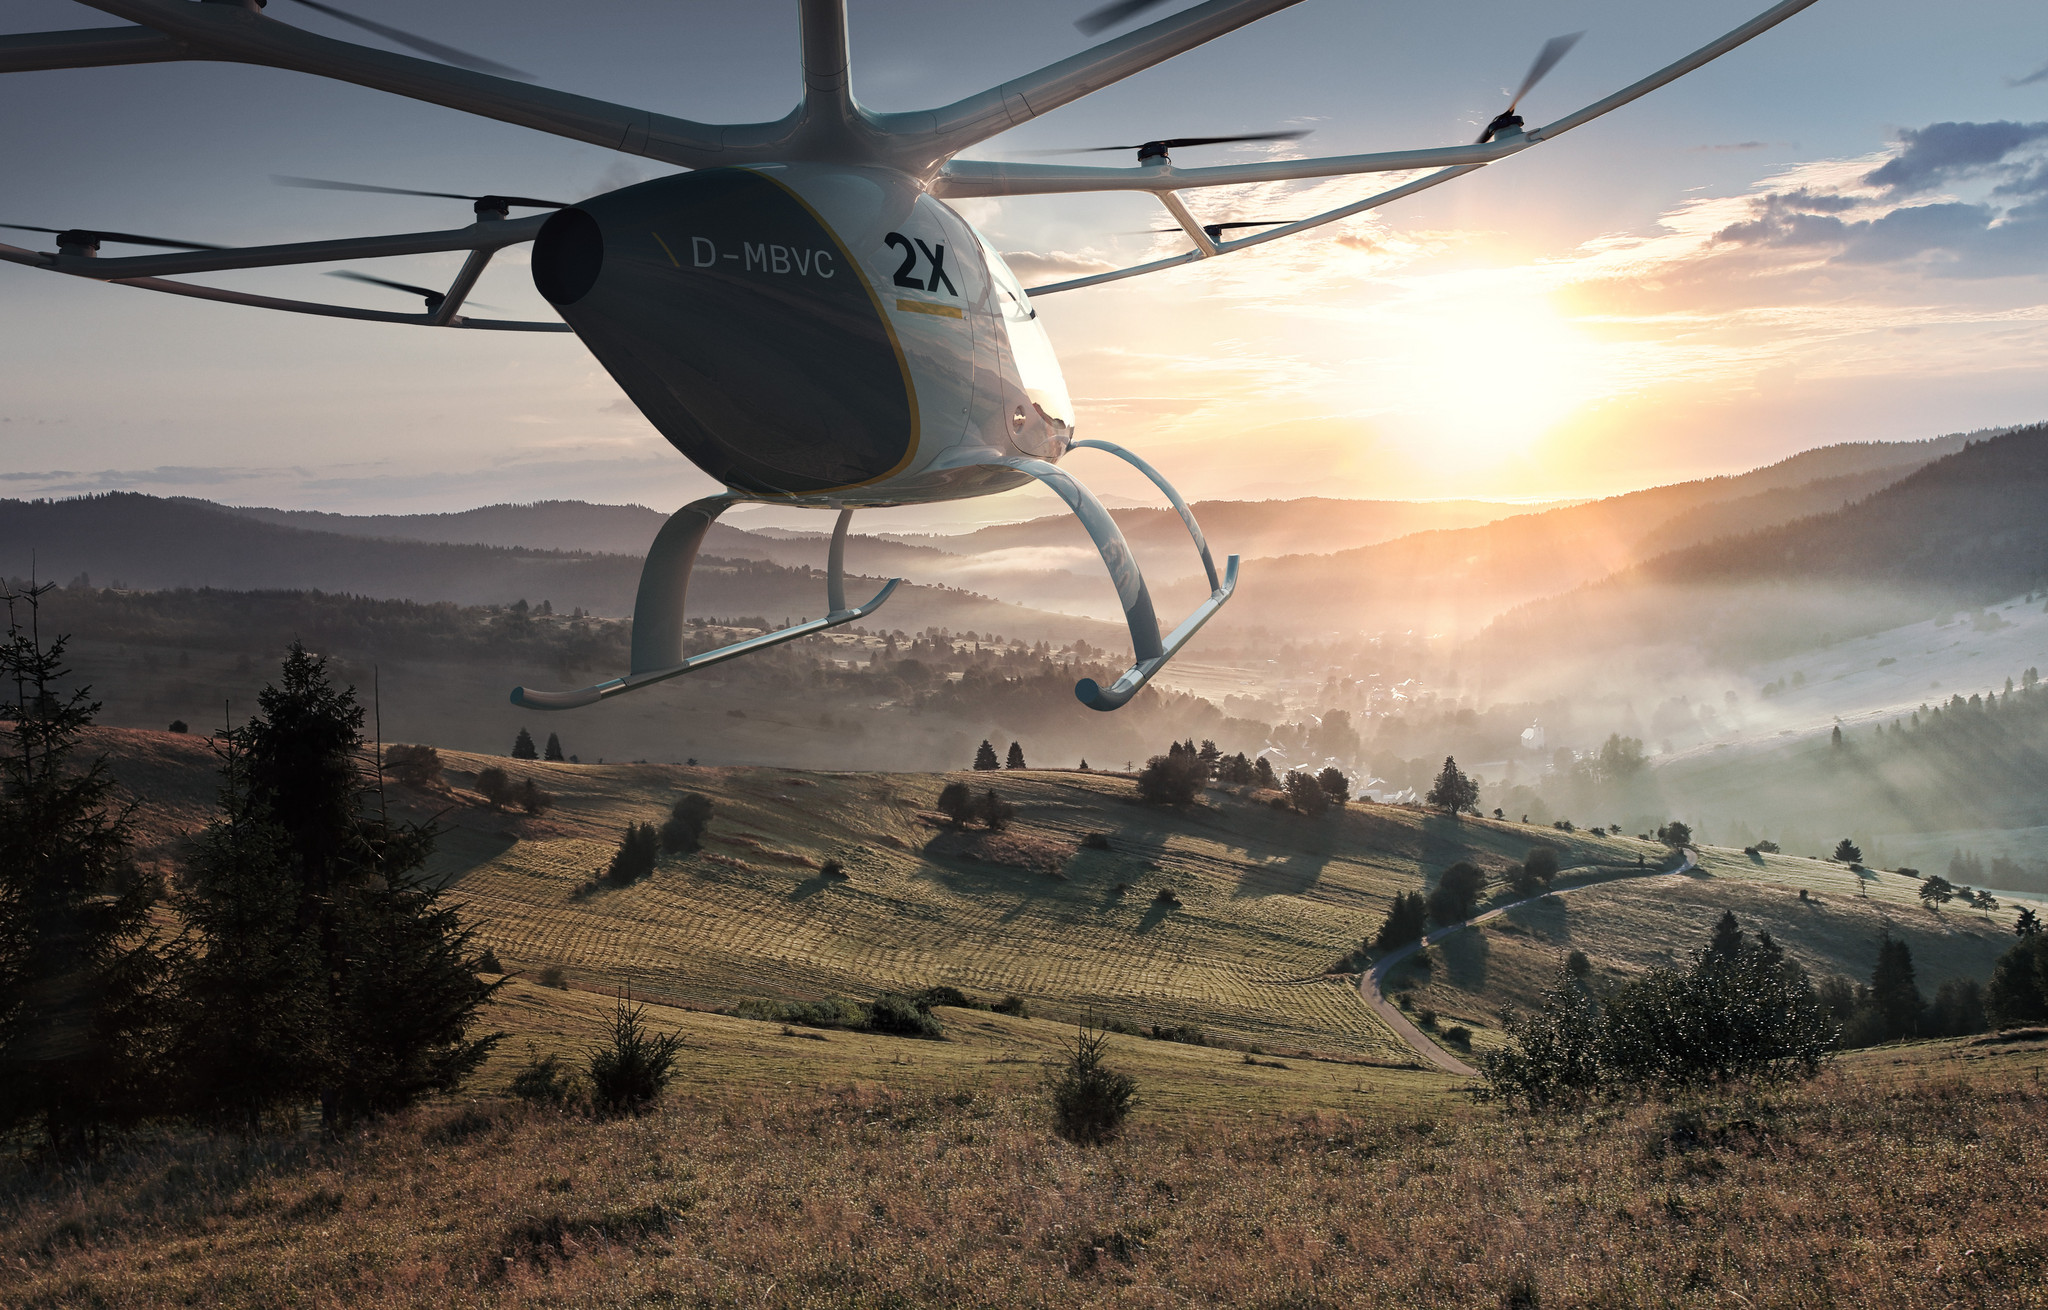 volocopter-2x-mountains.jpg